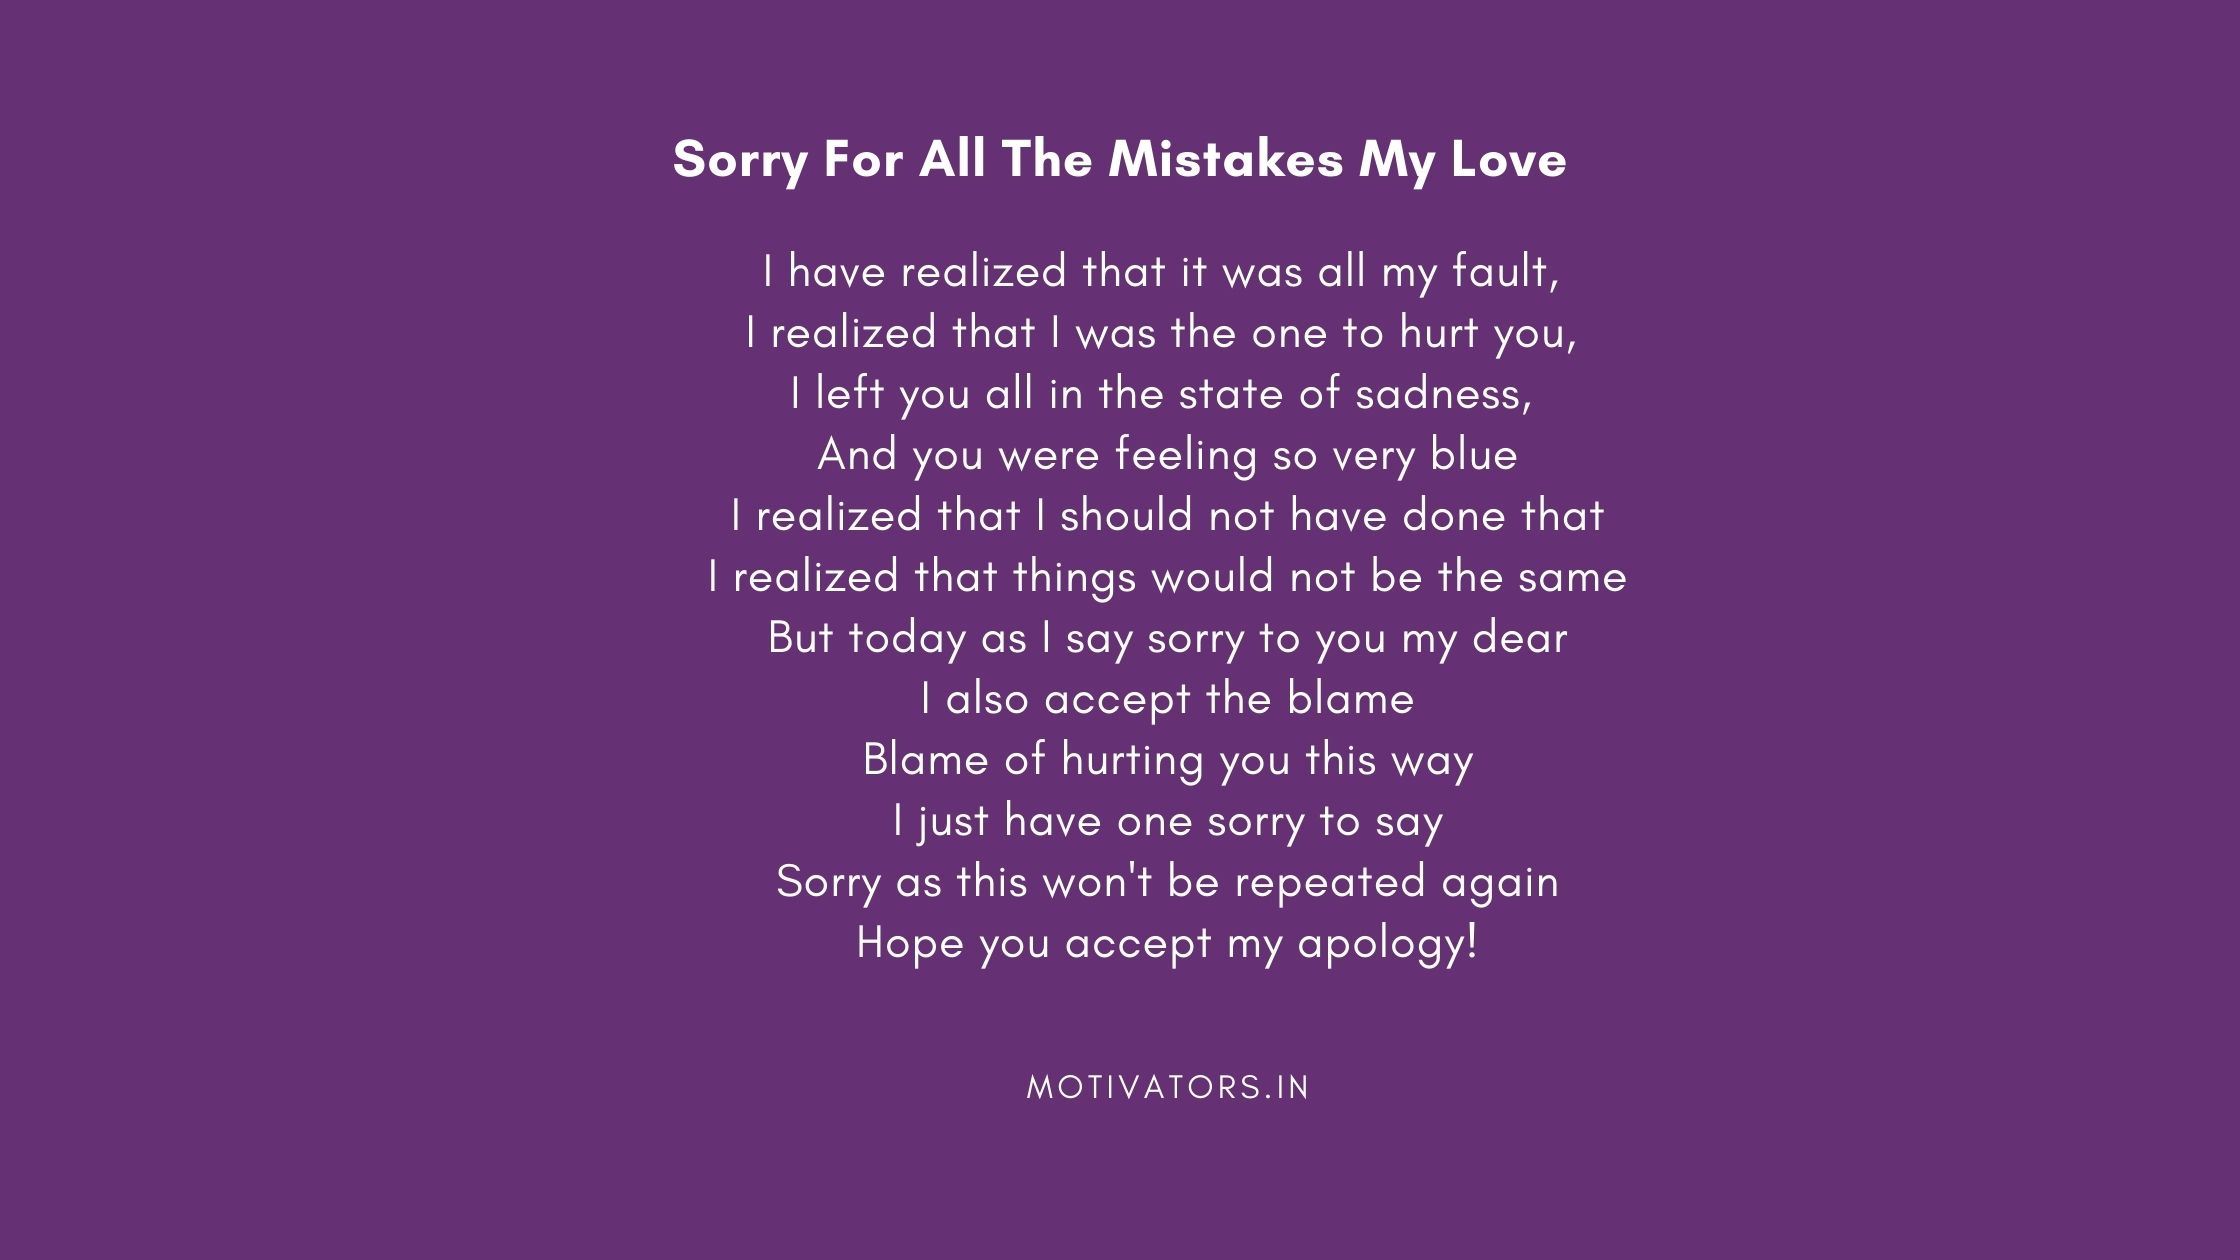 Sorry For All The Mistakes My Love